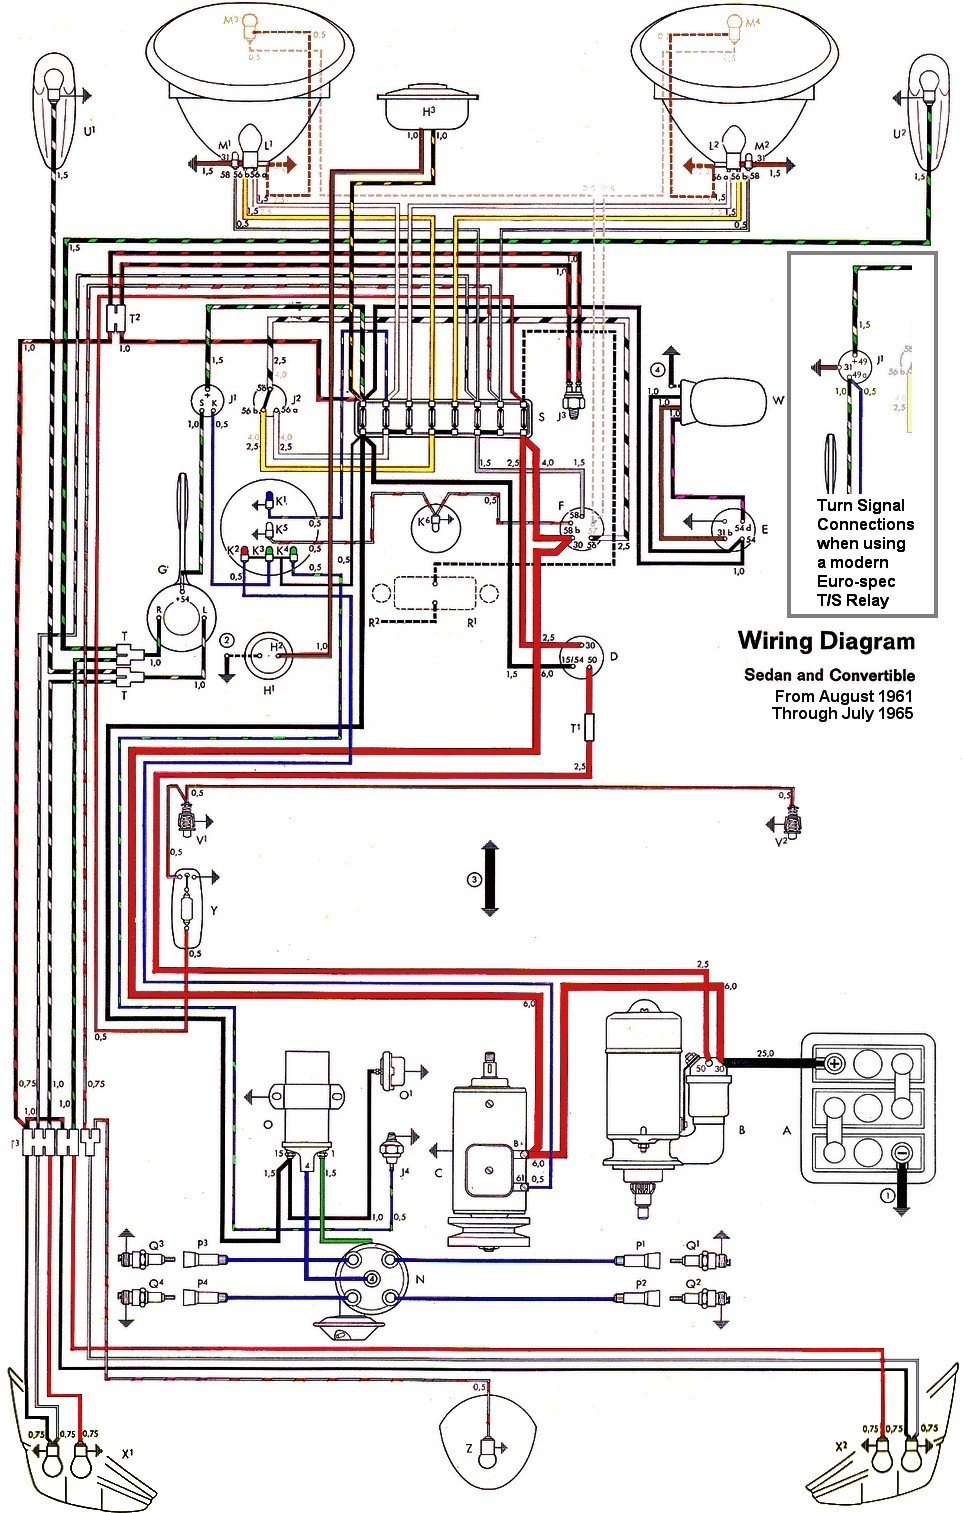 bug_62 65withinset vw bug turn signal wiring diagram vw beetle flasher relay wiring Basic Turn Signal Wiring Diagram at edmiracle.co